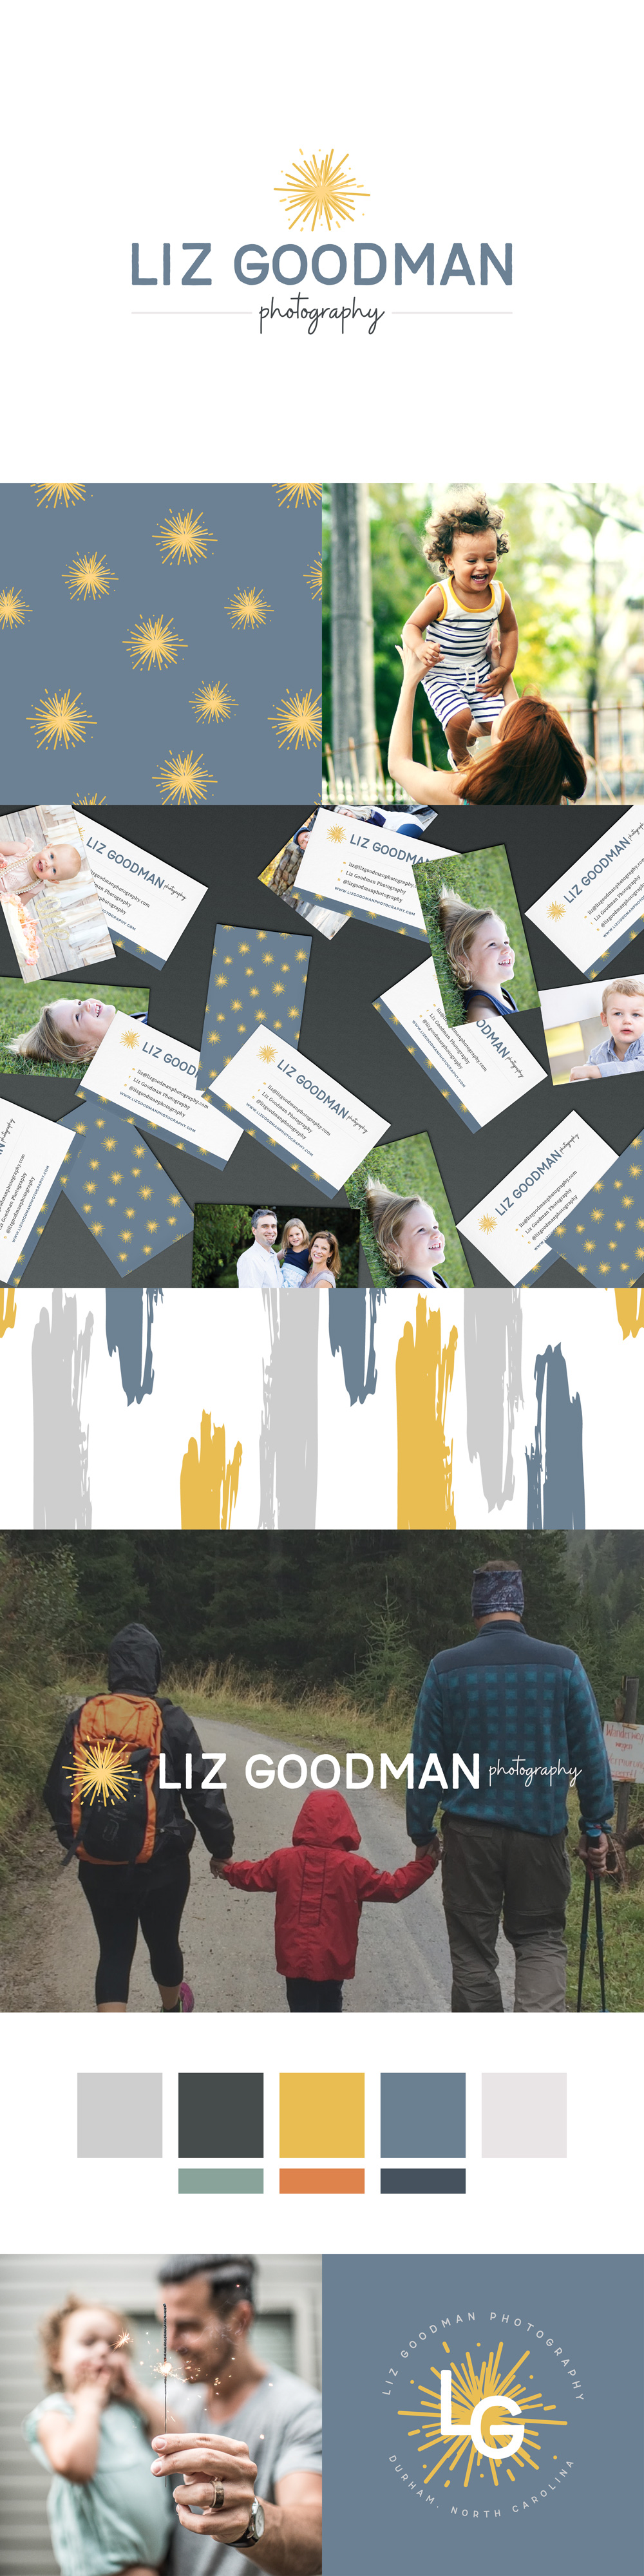 Brand board and brand identity design for Liz Goodman Photography, a family and lifestyle photographer in Raleigh-Durham | Alexa B. Creative & Design